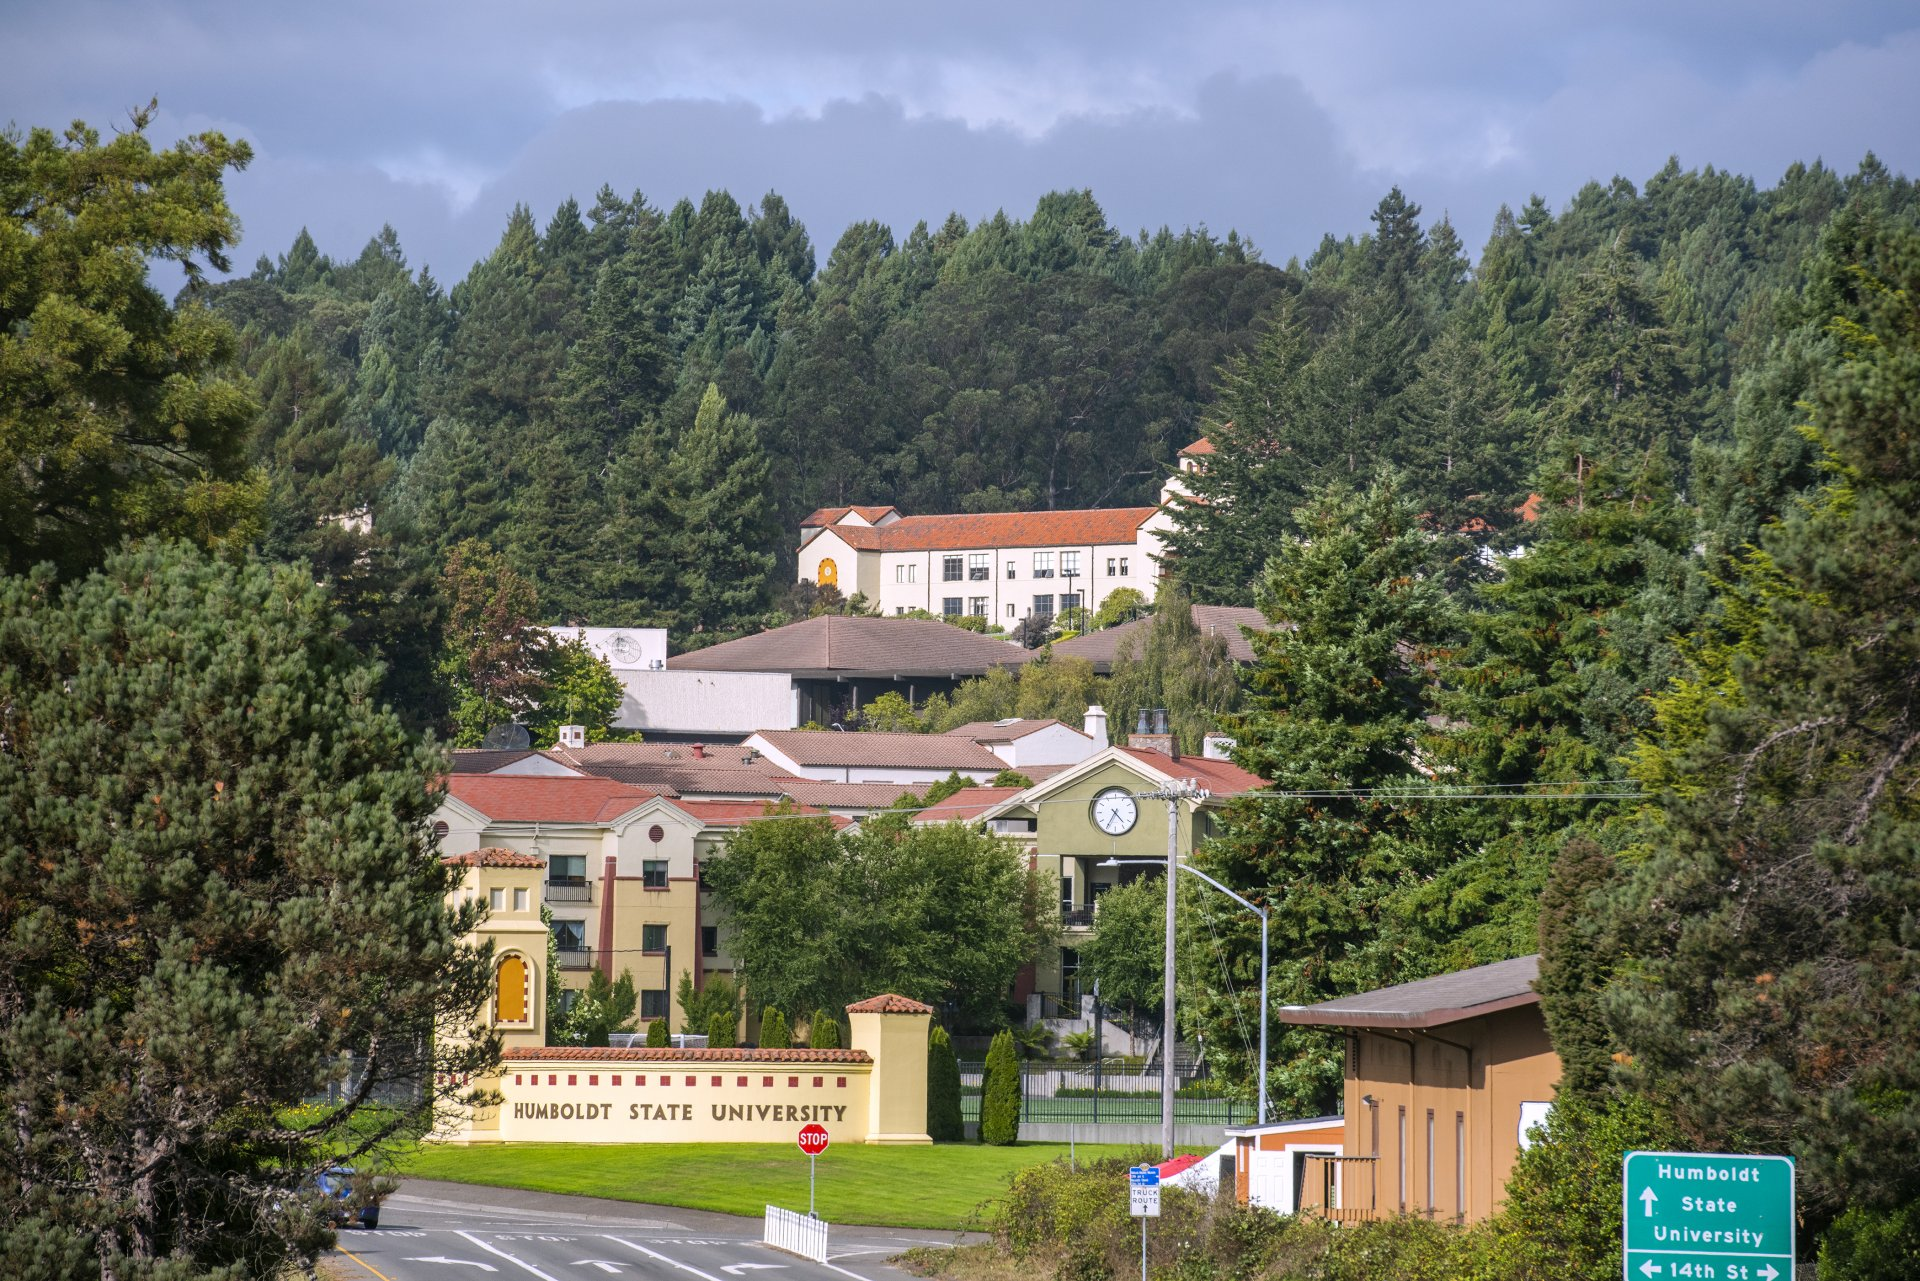 Photo courtesy of Humboldt State